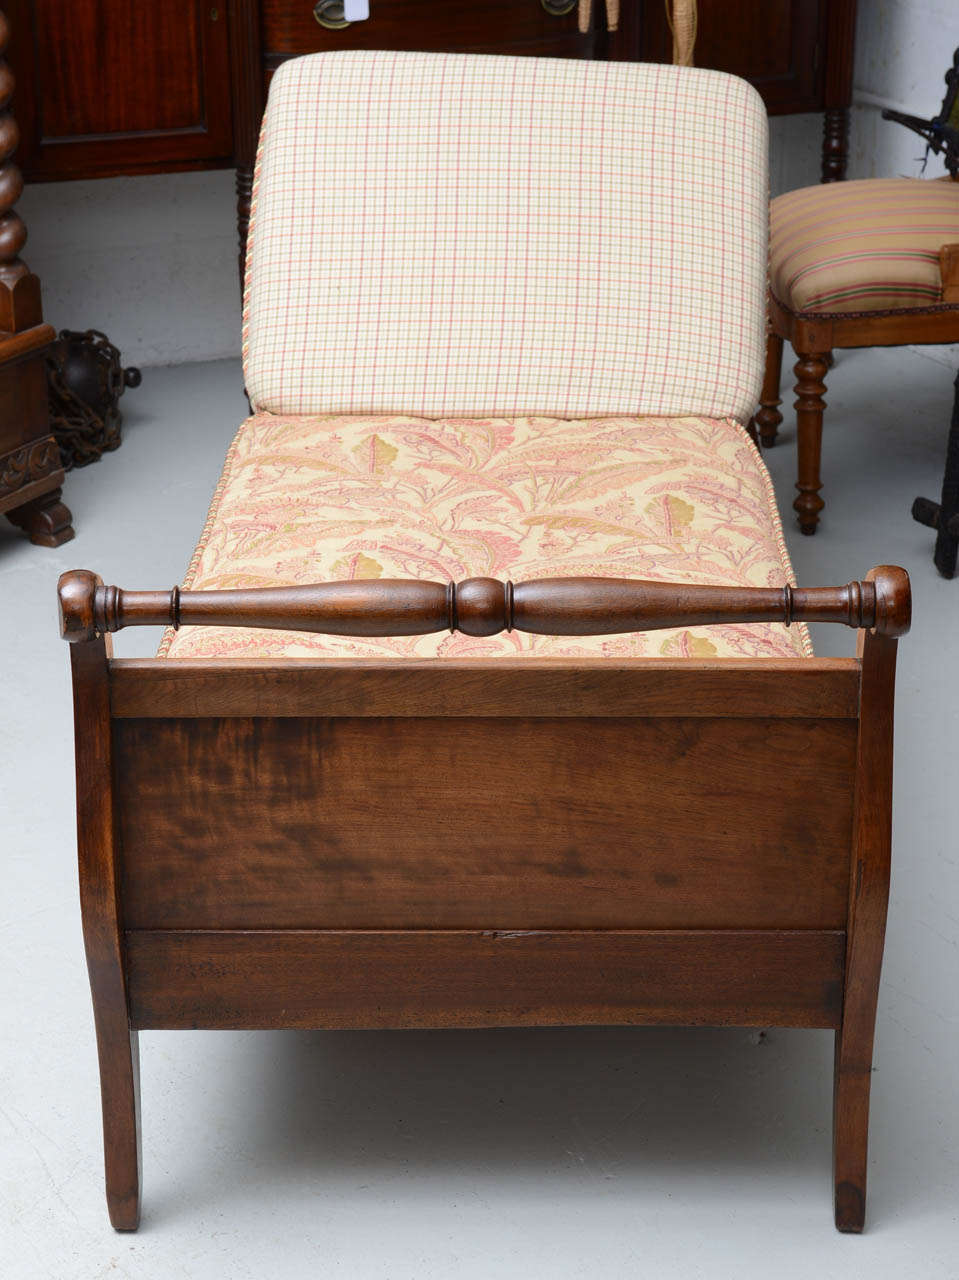 Arts and crafts mission daybed circa 1905 at 1stdibs for Arts and crafts daybed